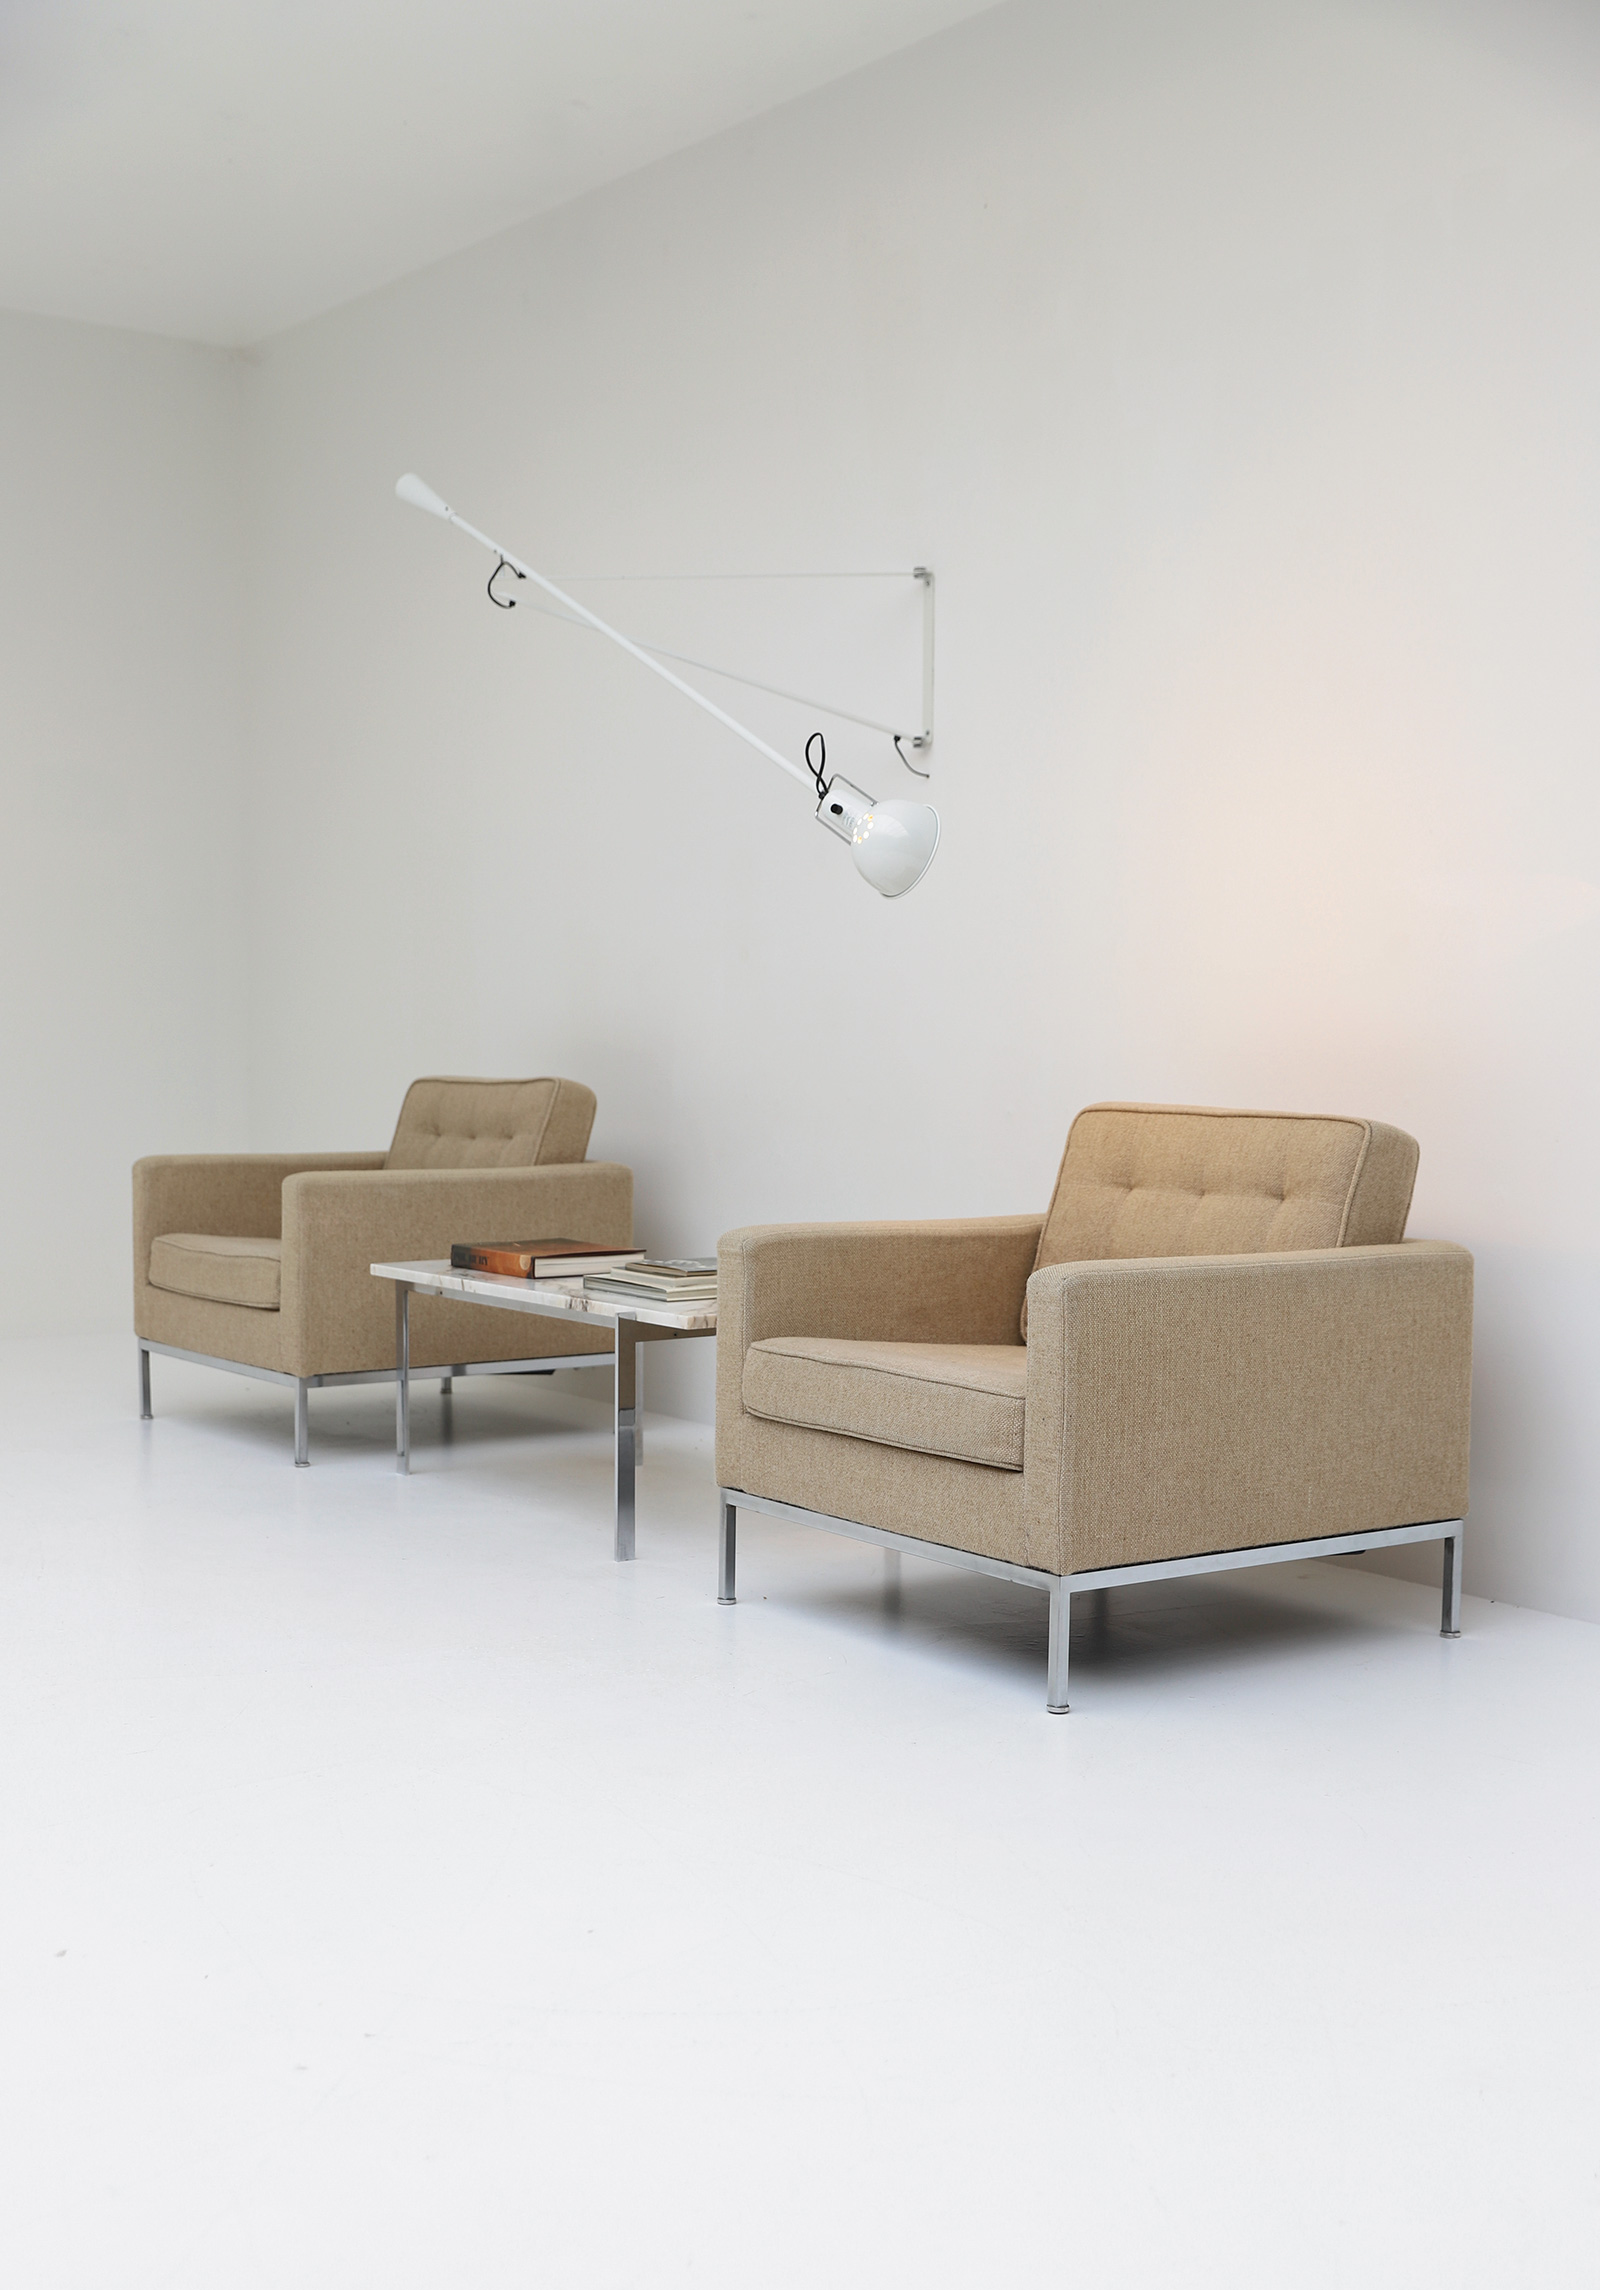 Florence Knoll Arm Chairsimage 4